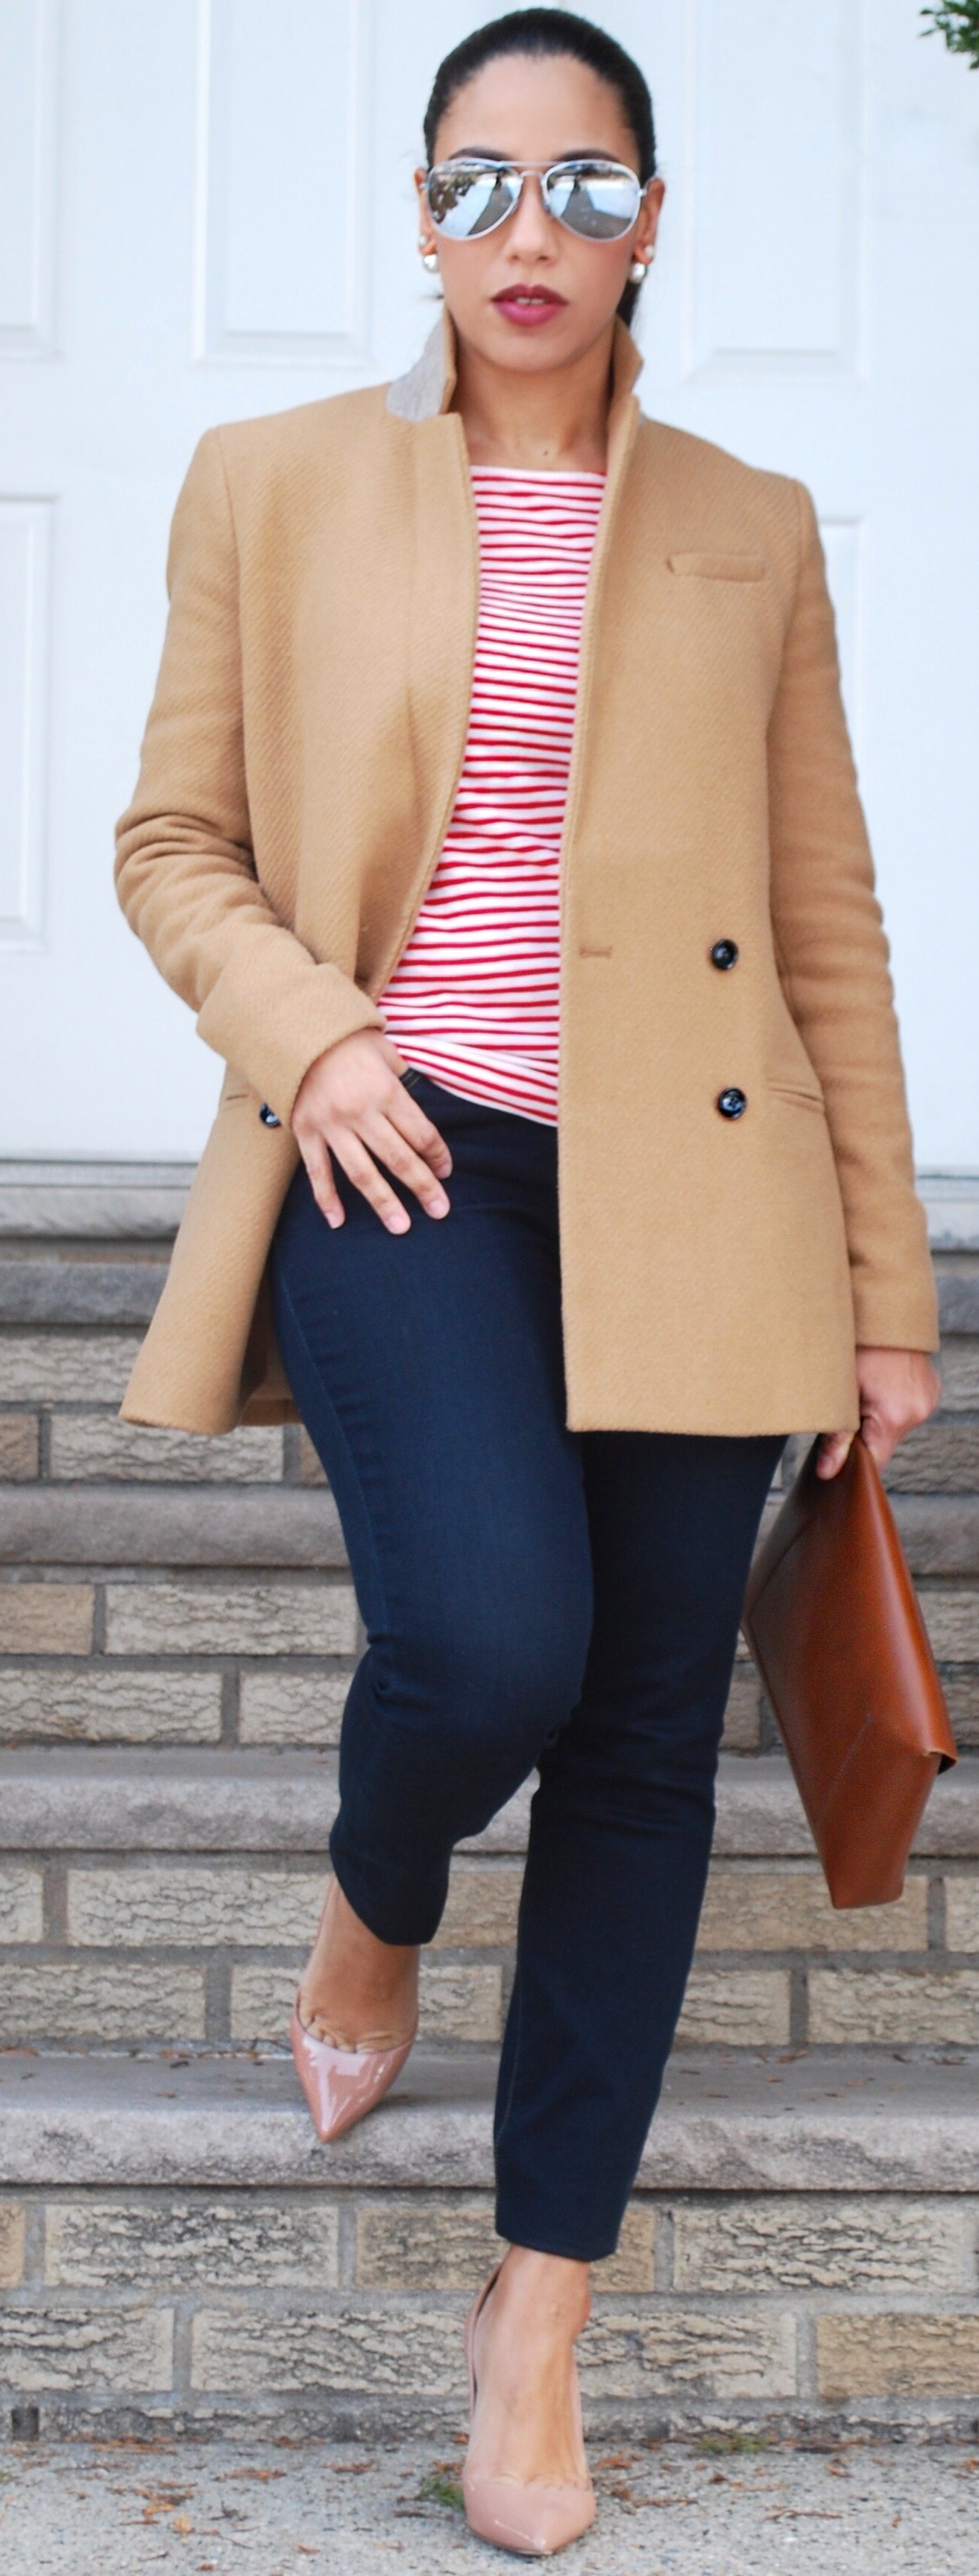 Camel blazer and red stripes